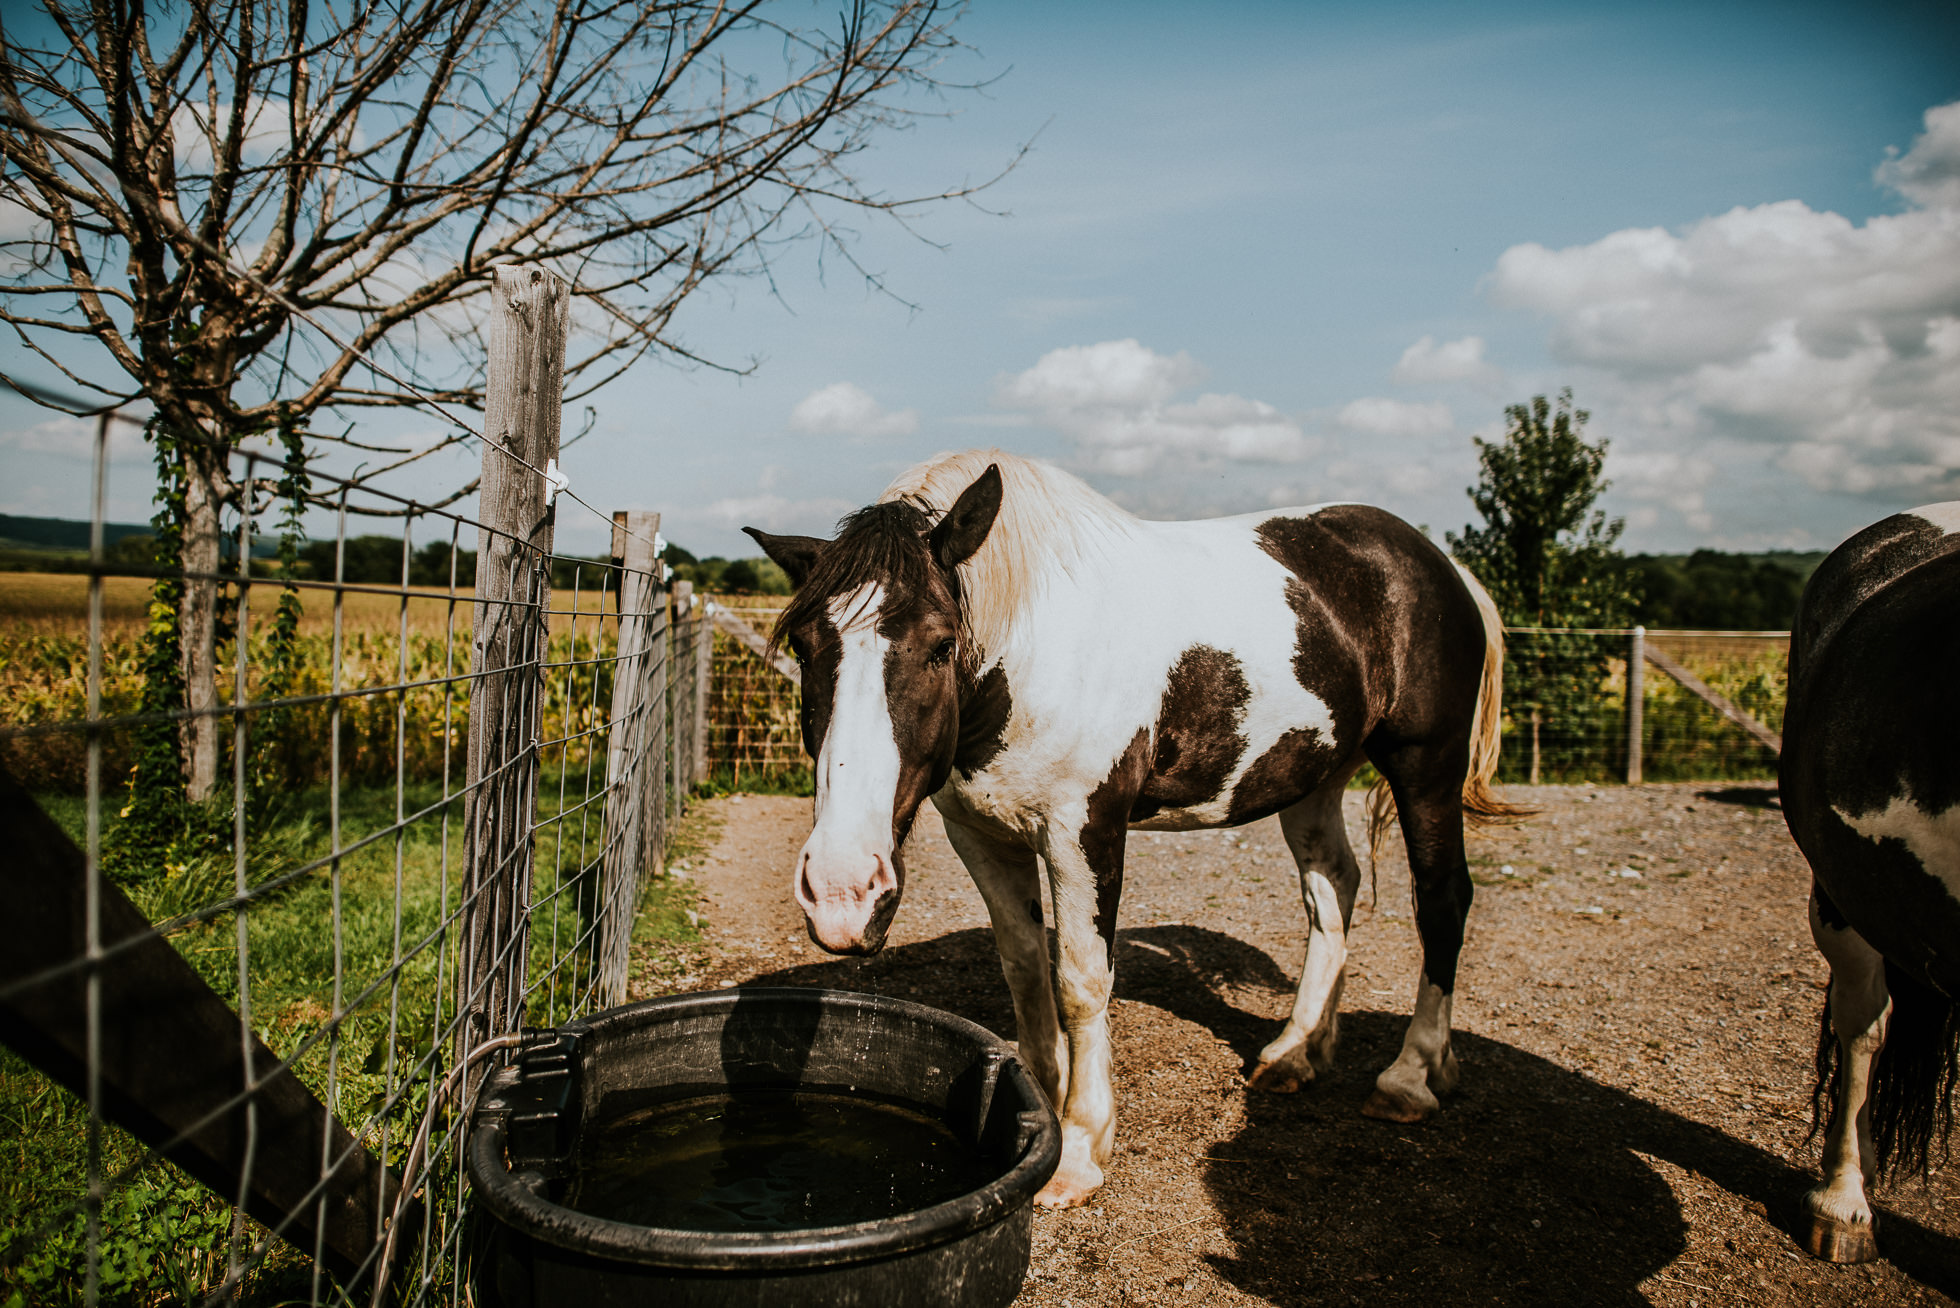 horses at olde tater barn wedding in central bridge, ny photographed by traverse the tides